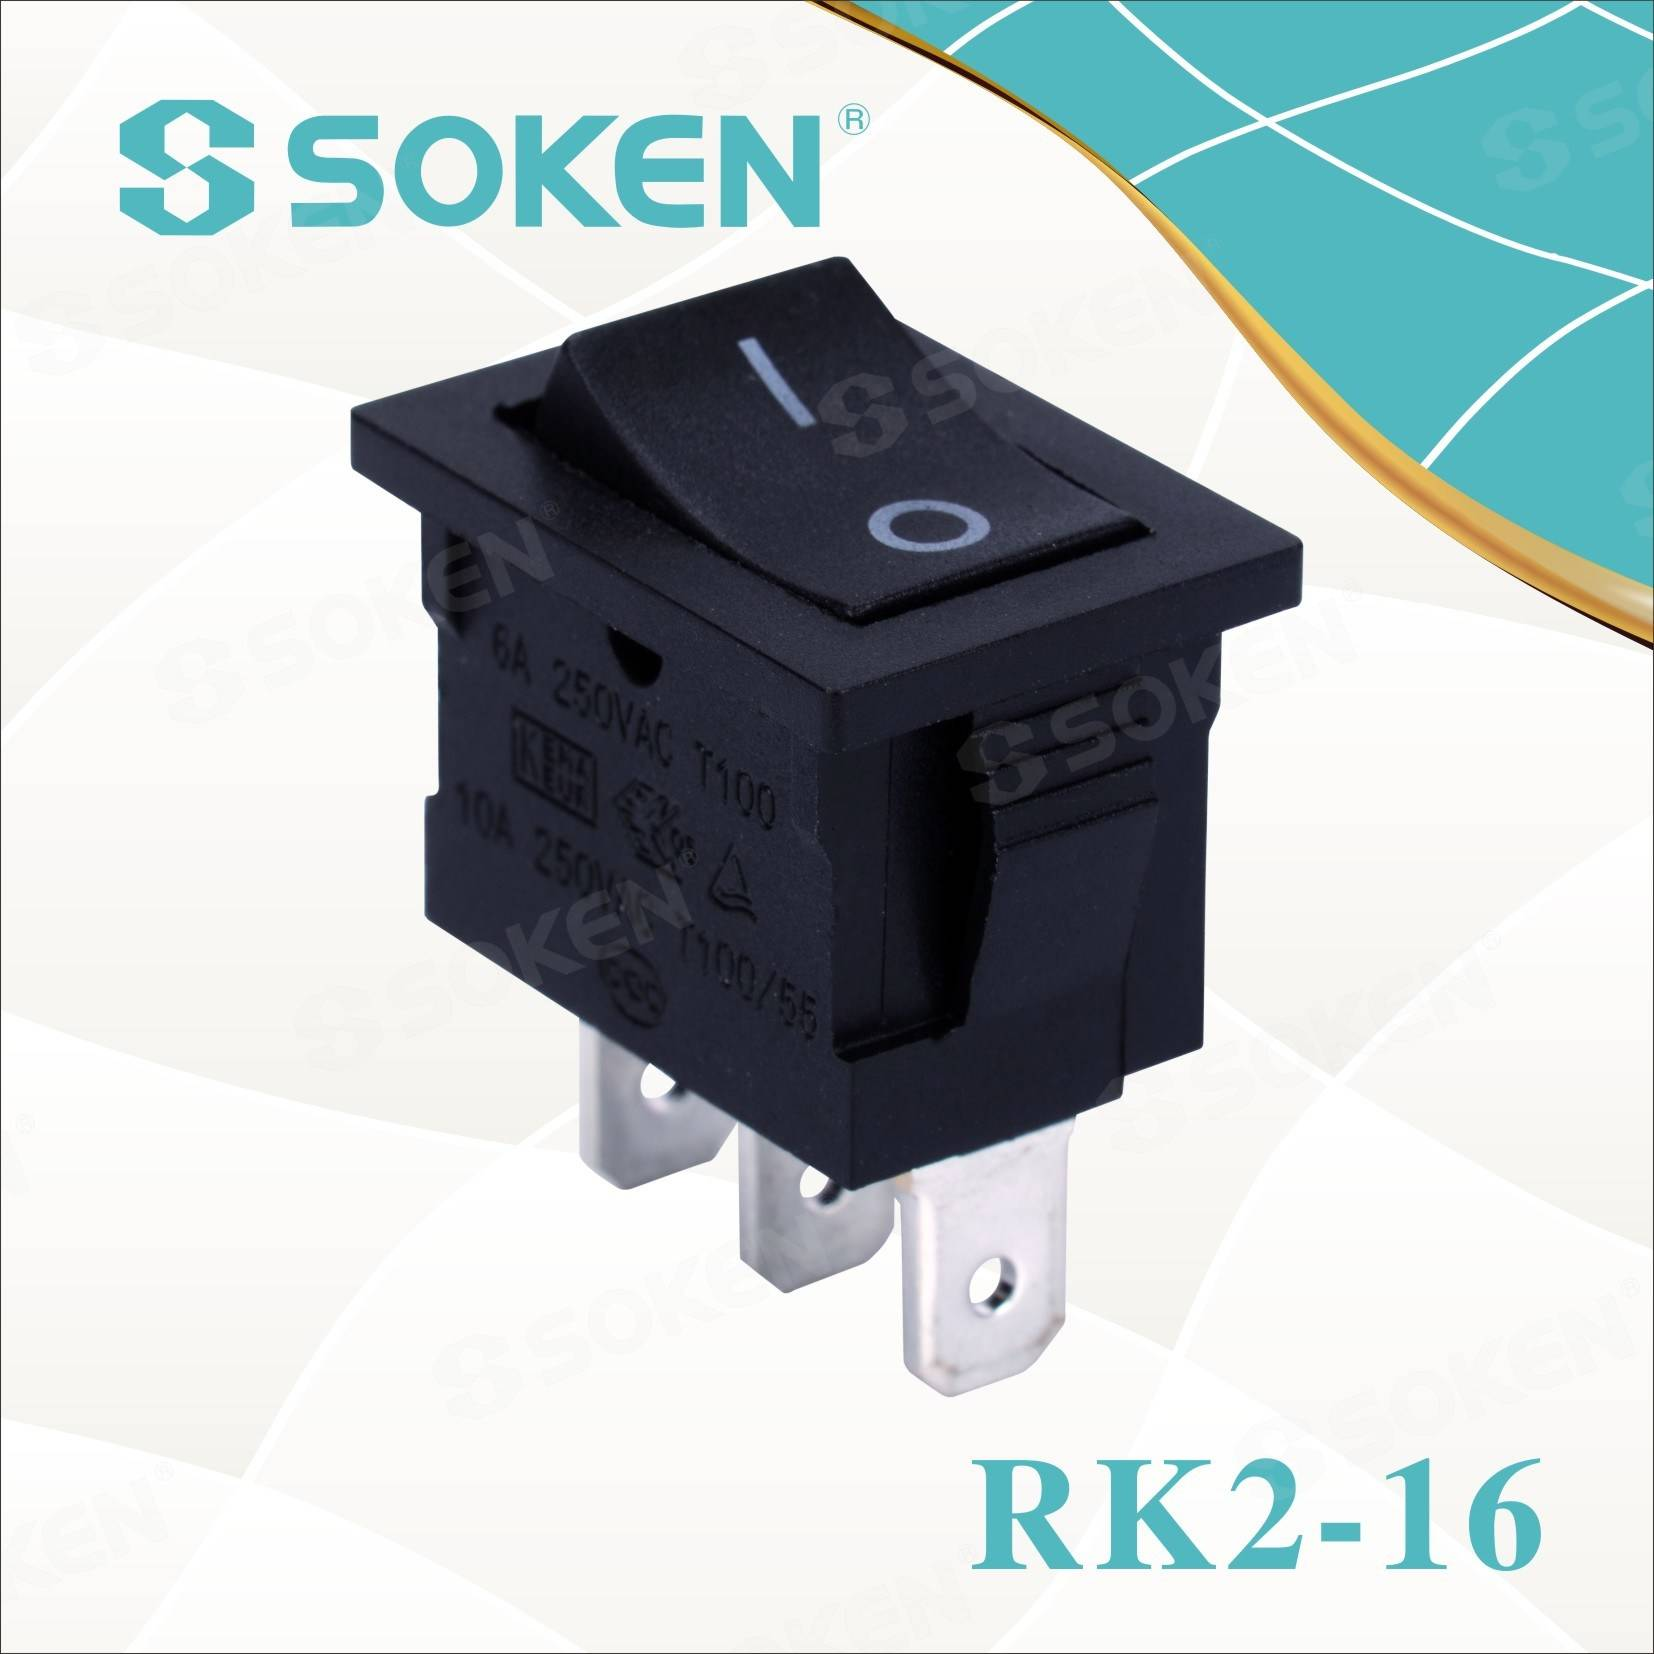 Sokne Rk2-16 1X2 on on Rocker Switch